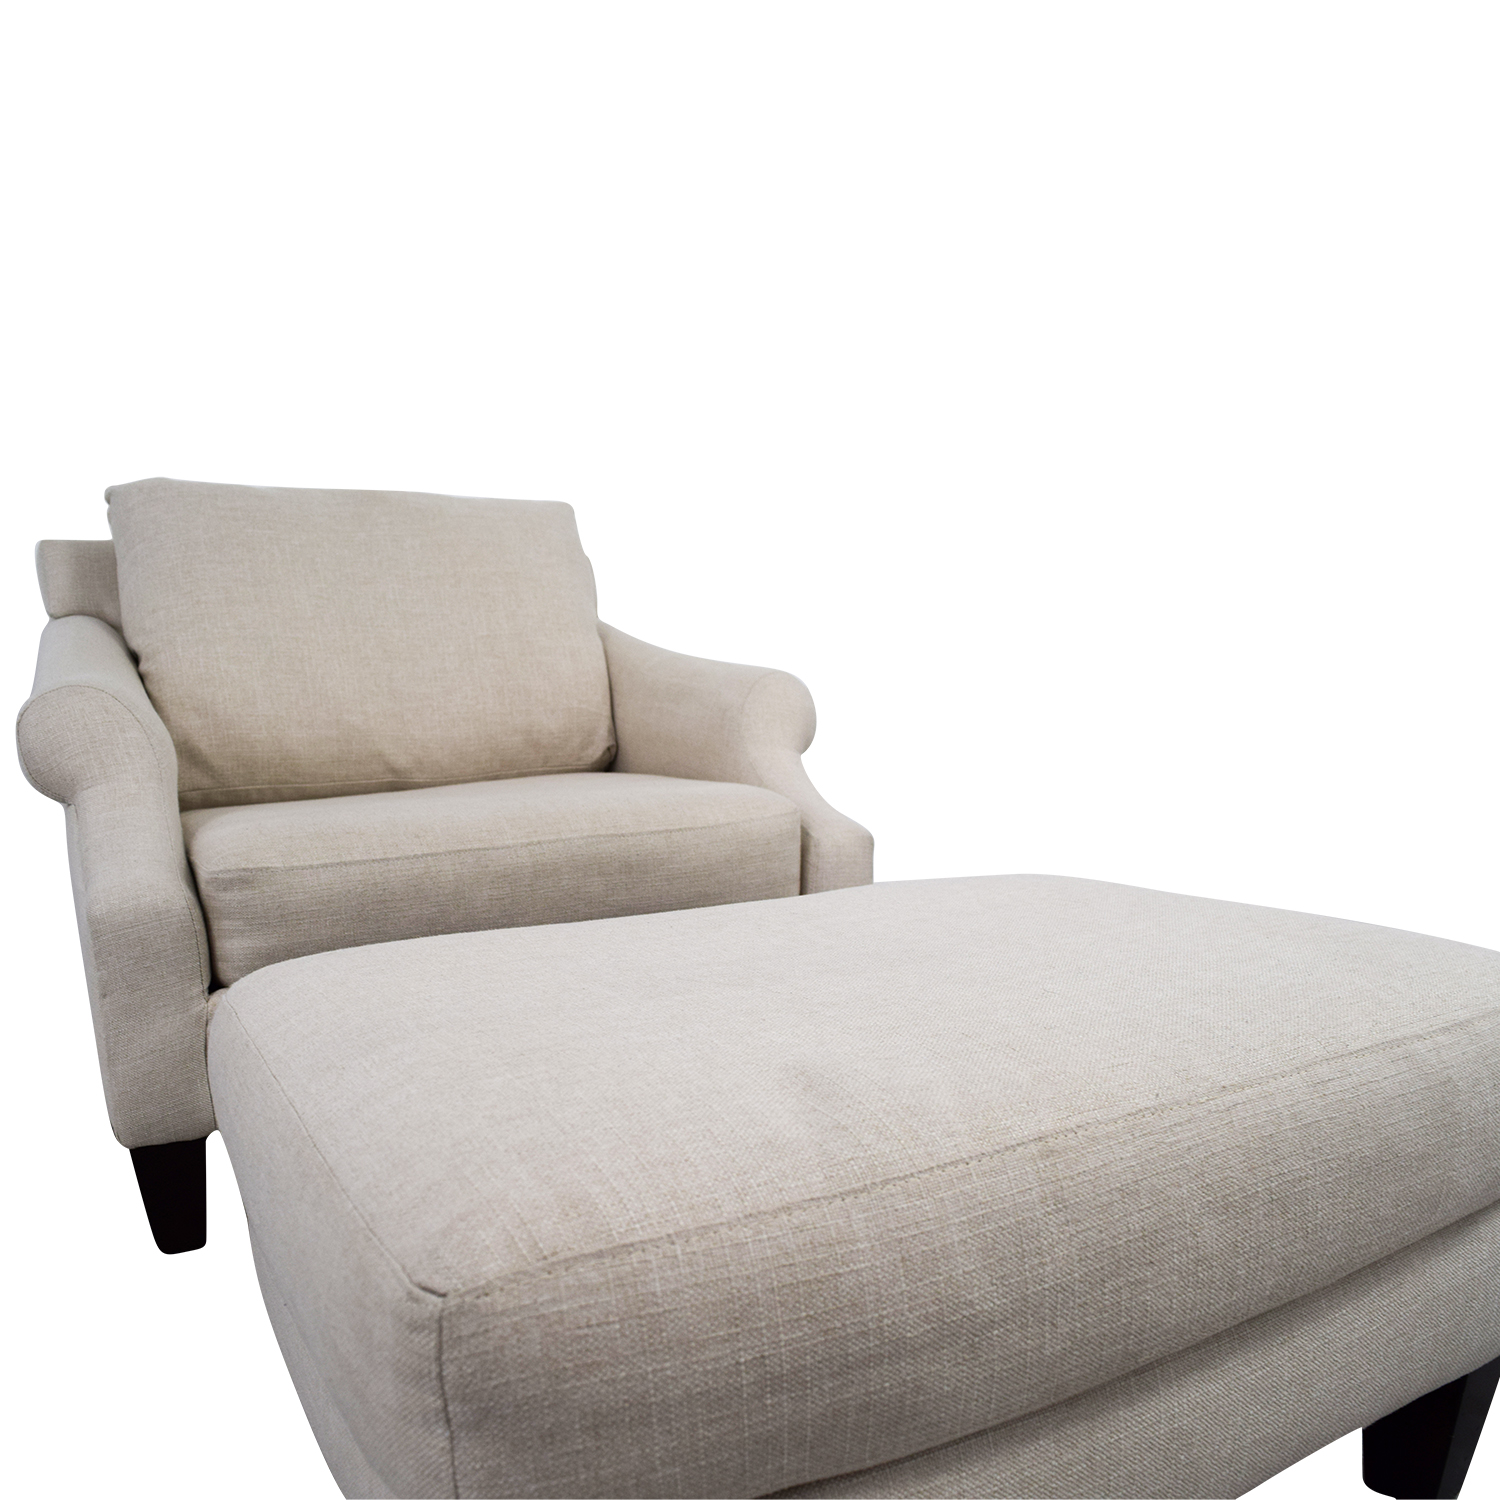 Raymour & Flanigan Raymour & Flanigan Beige Love Chair and Ottoman Chairs